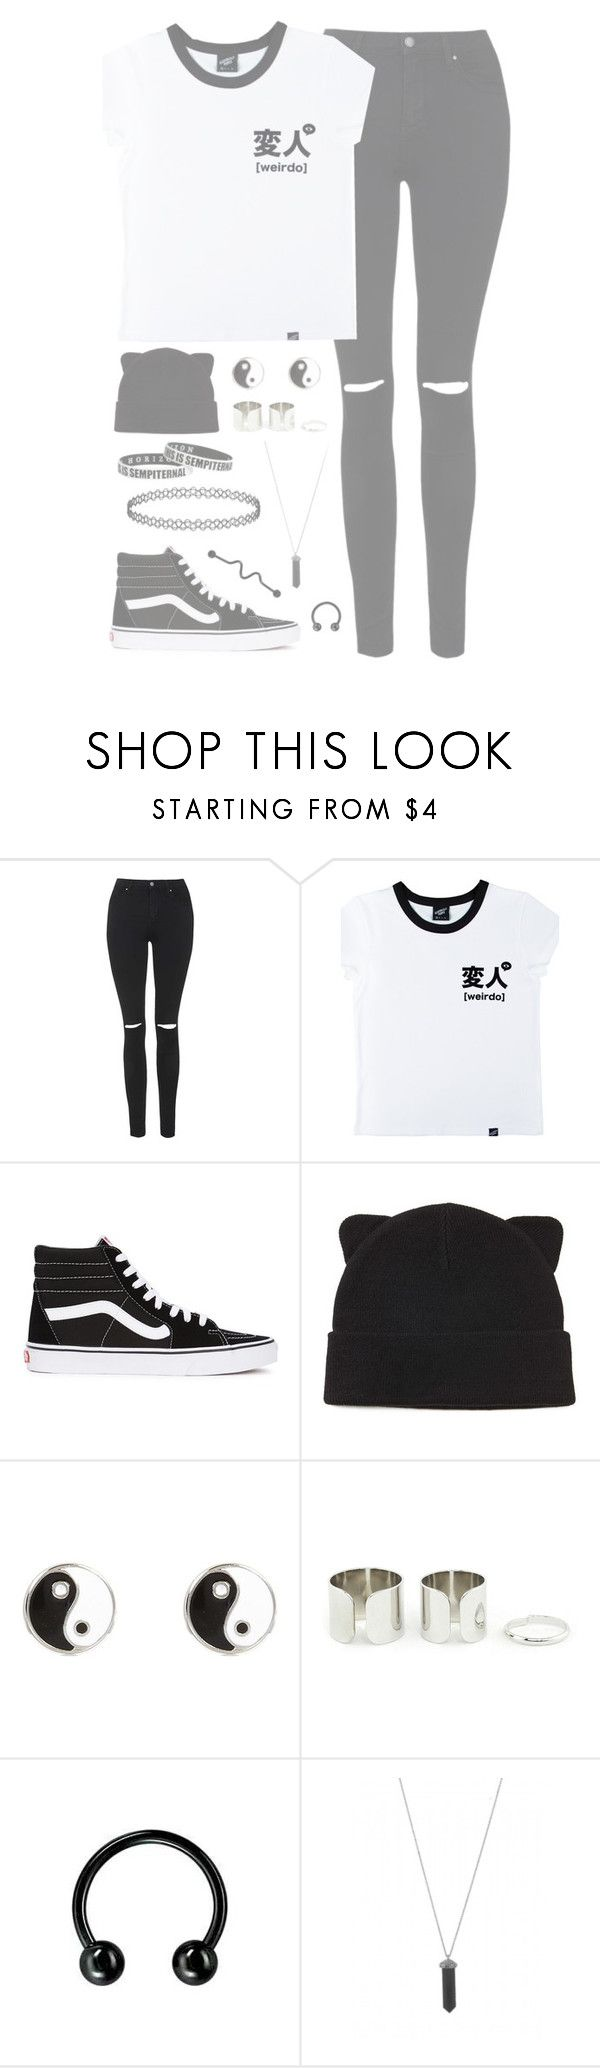 """//COOL//"" by alexdacko ❤ liked on Polyvore featuring Topshop, Illustrated People, Vans, Forever 21, River Island, Karen Kane and Hot Topic"